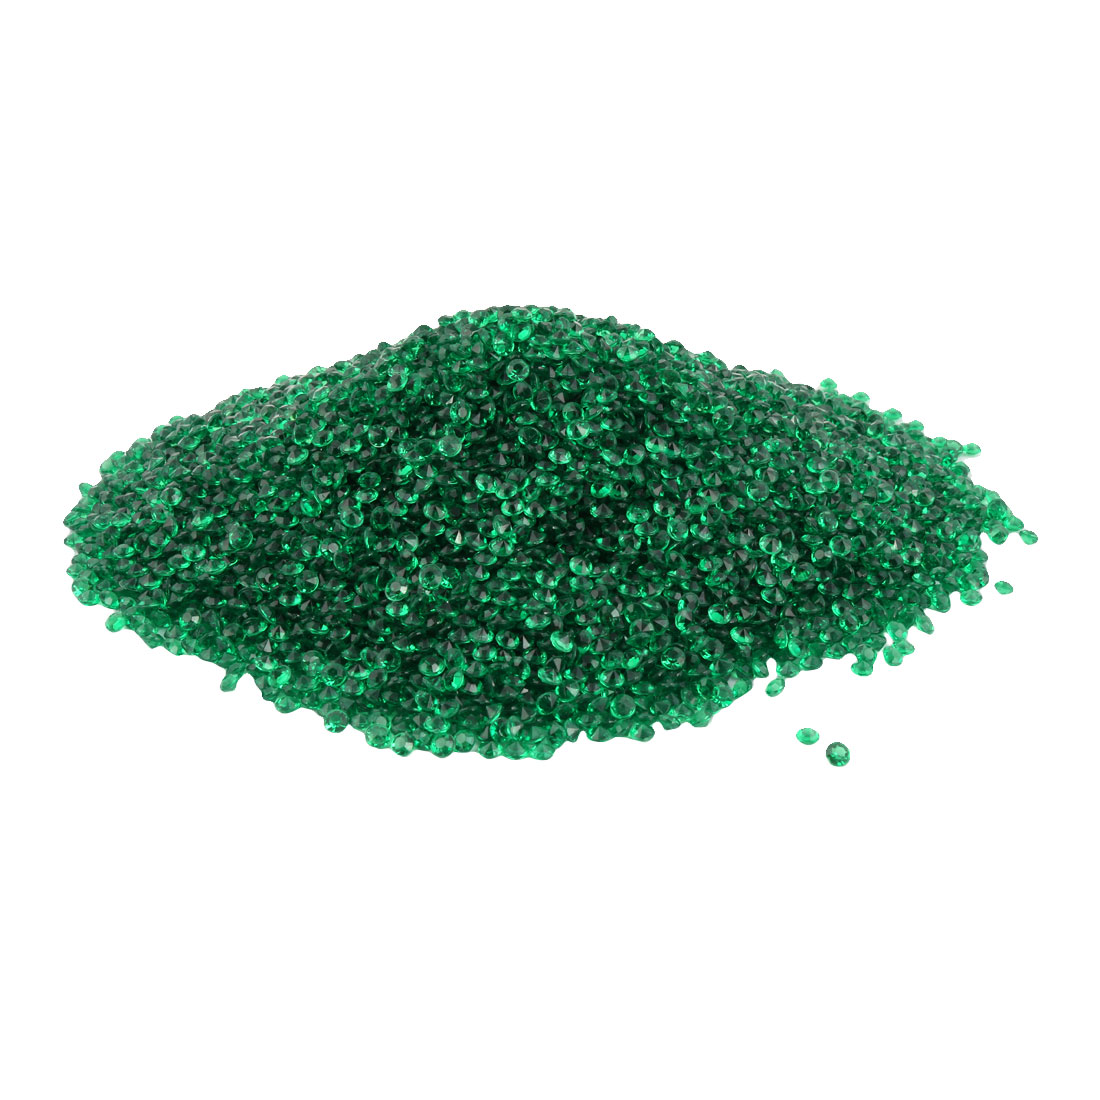 Plastic Crystal Inlay Wedding Party Decoration Green 4.5mm Diameter 10000 Pcs